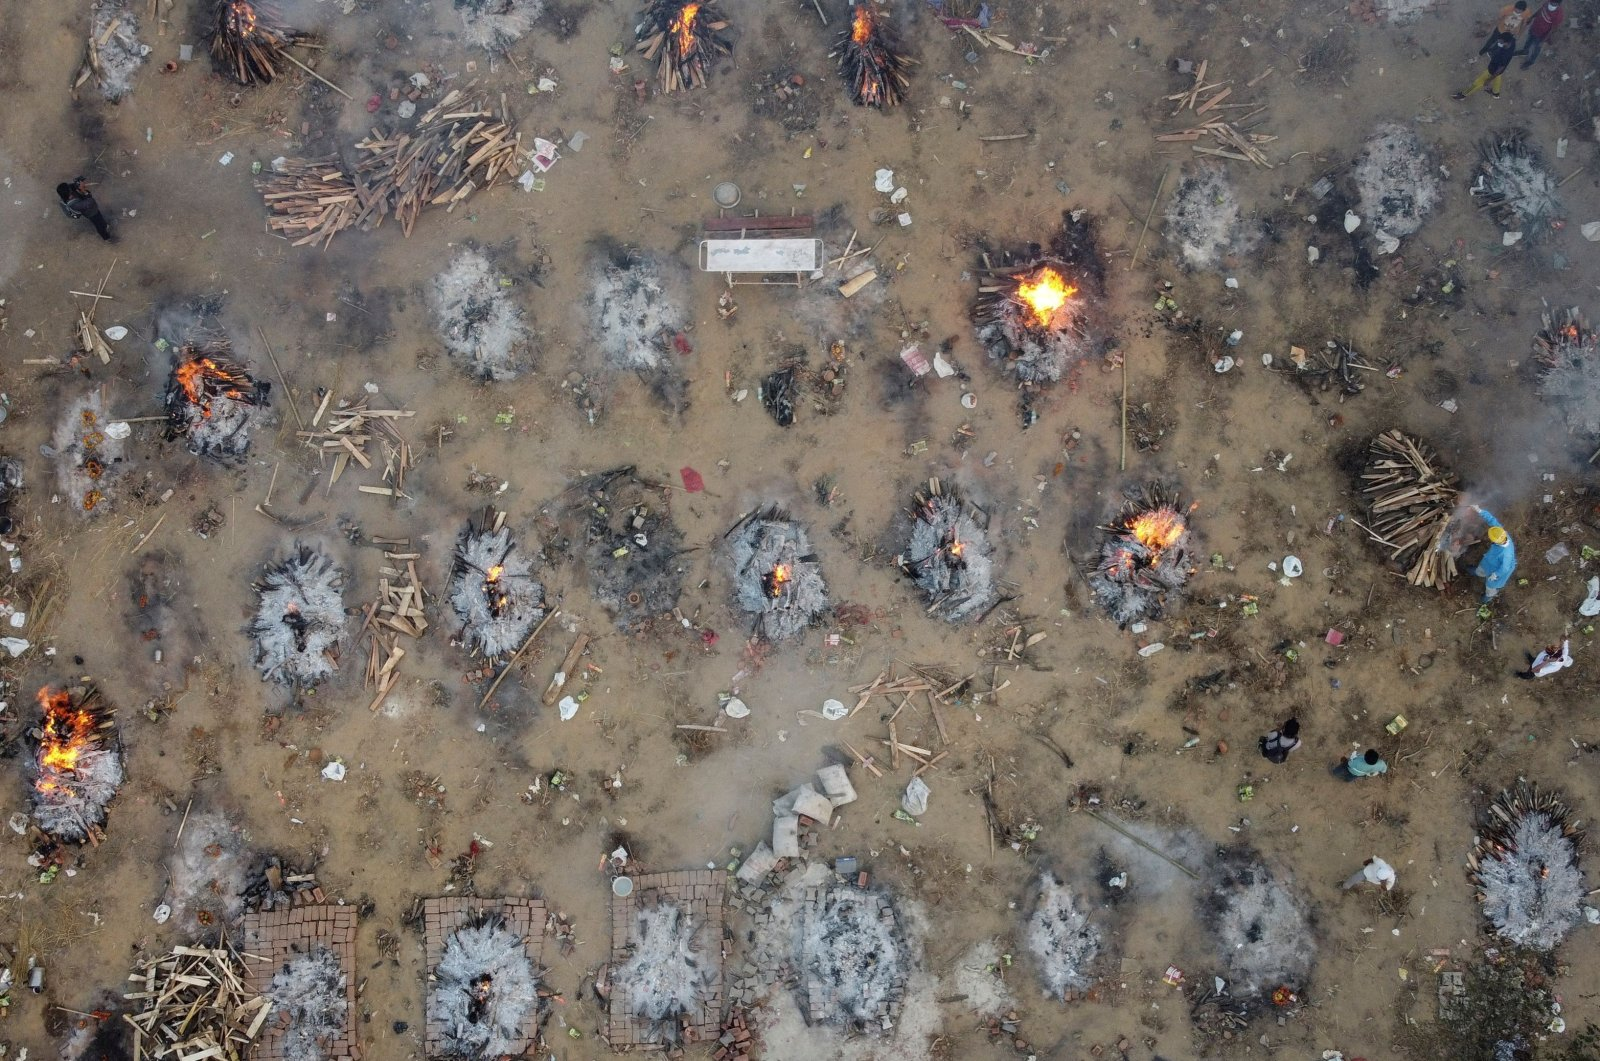 A mass cremation of victims who died due to the coronavirus is seen at a crematorium ground in New Delhi, India, April 22, 2021. (Reuters / Danish Siddiqui Photo)